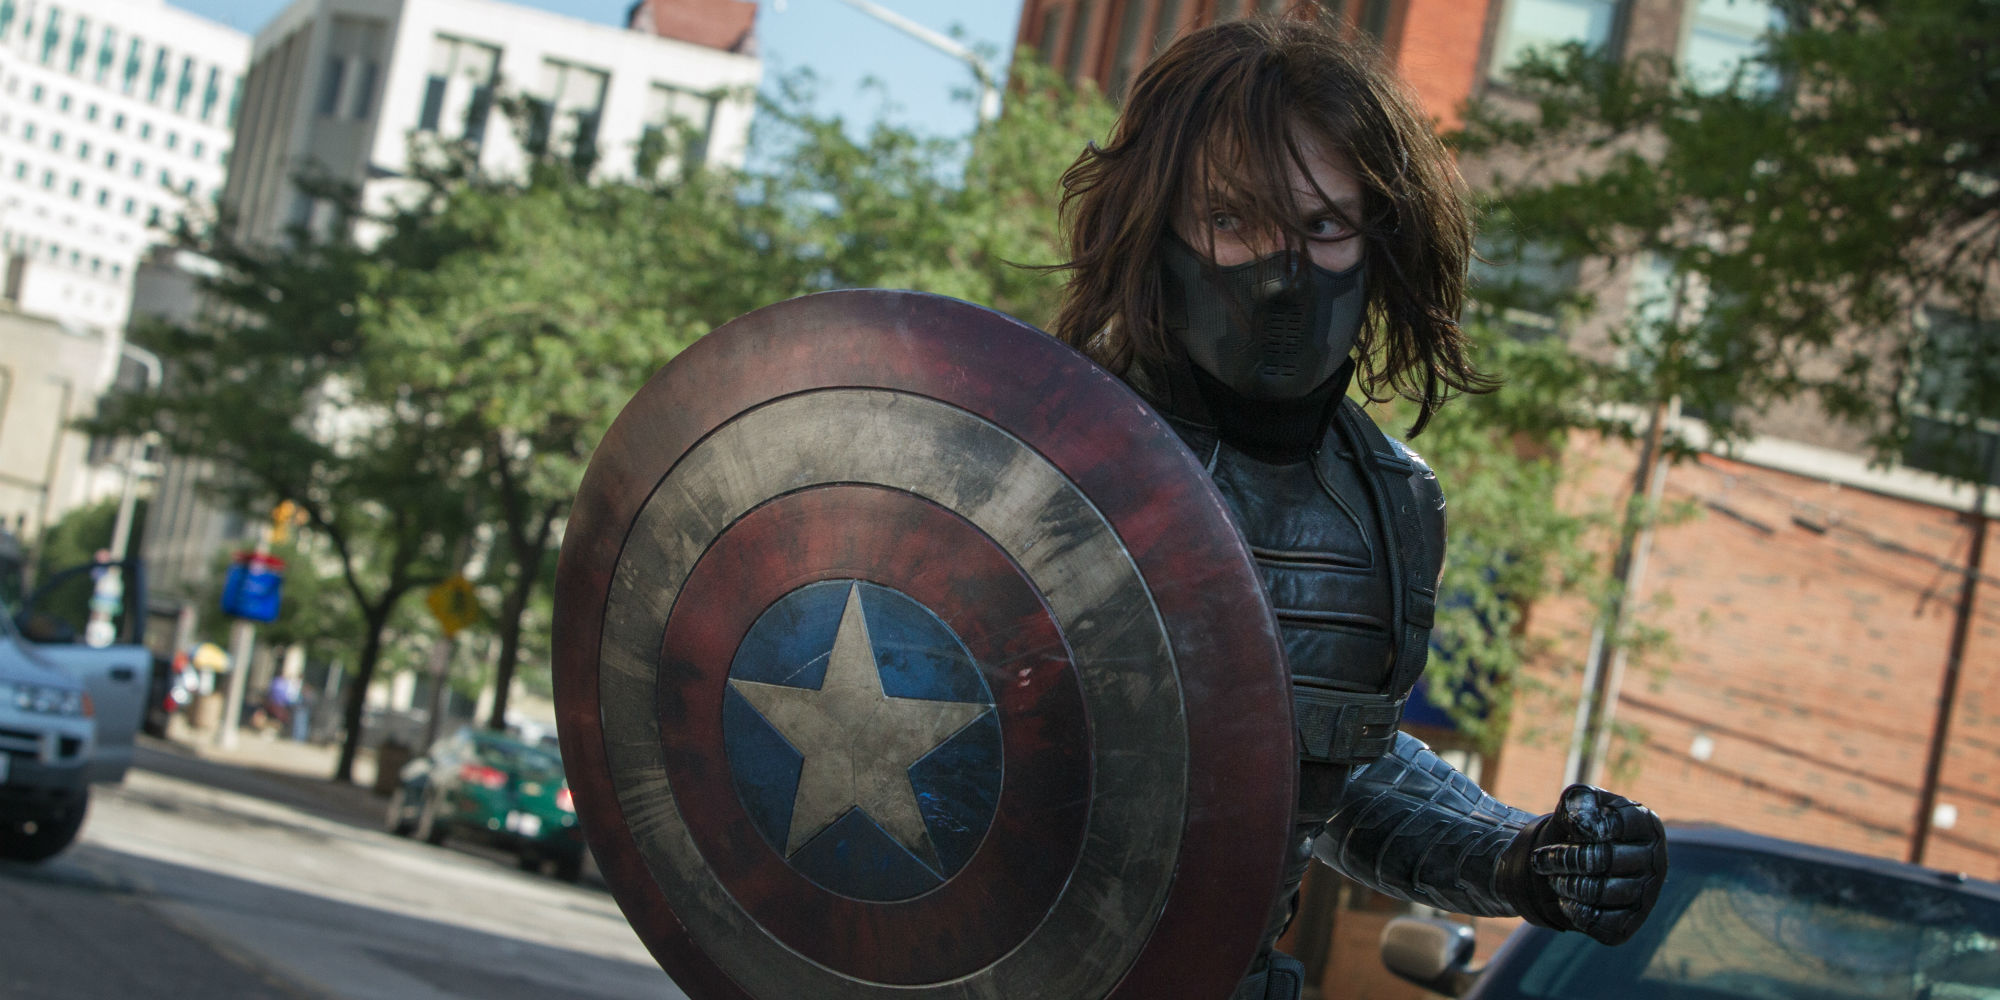 Winter Soldier holding Captain America's shield